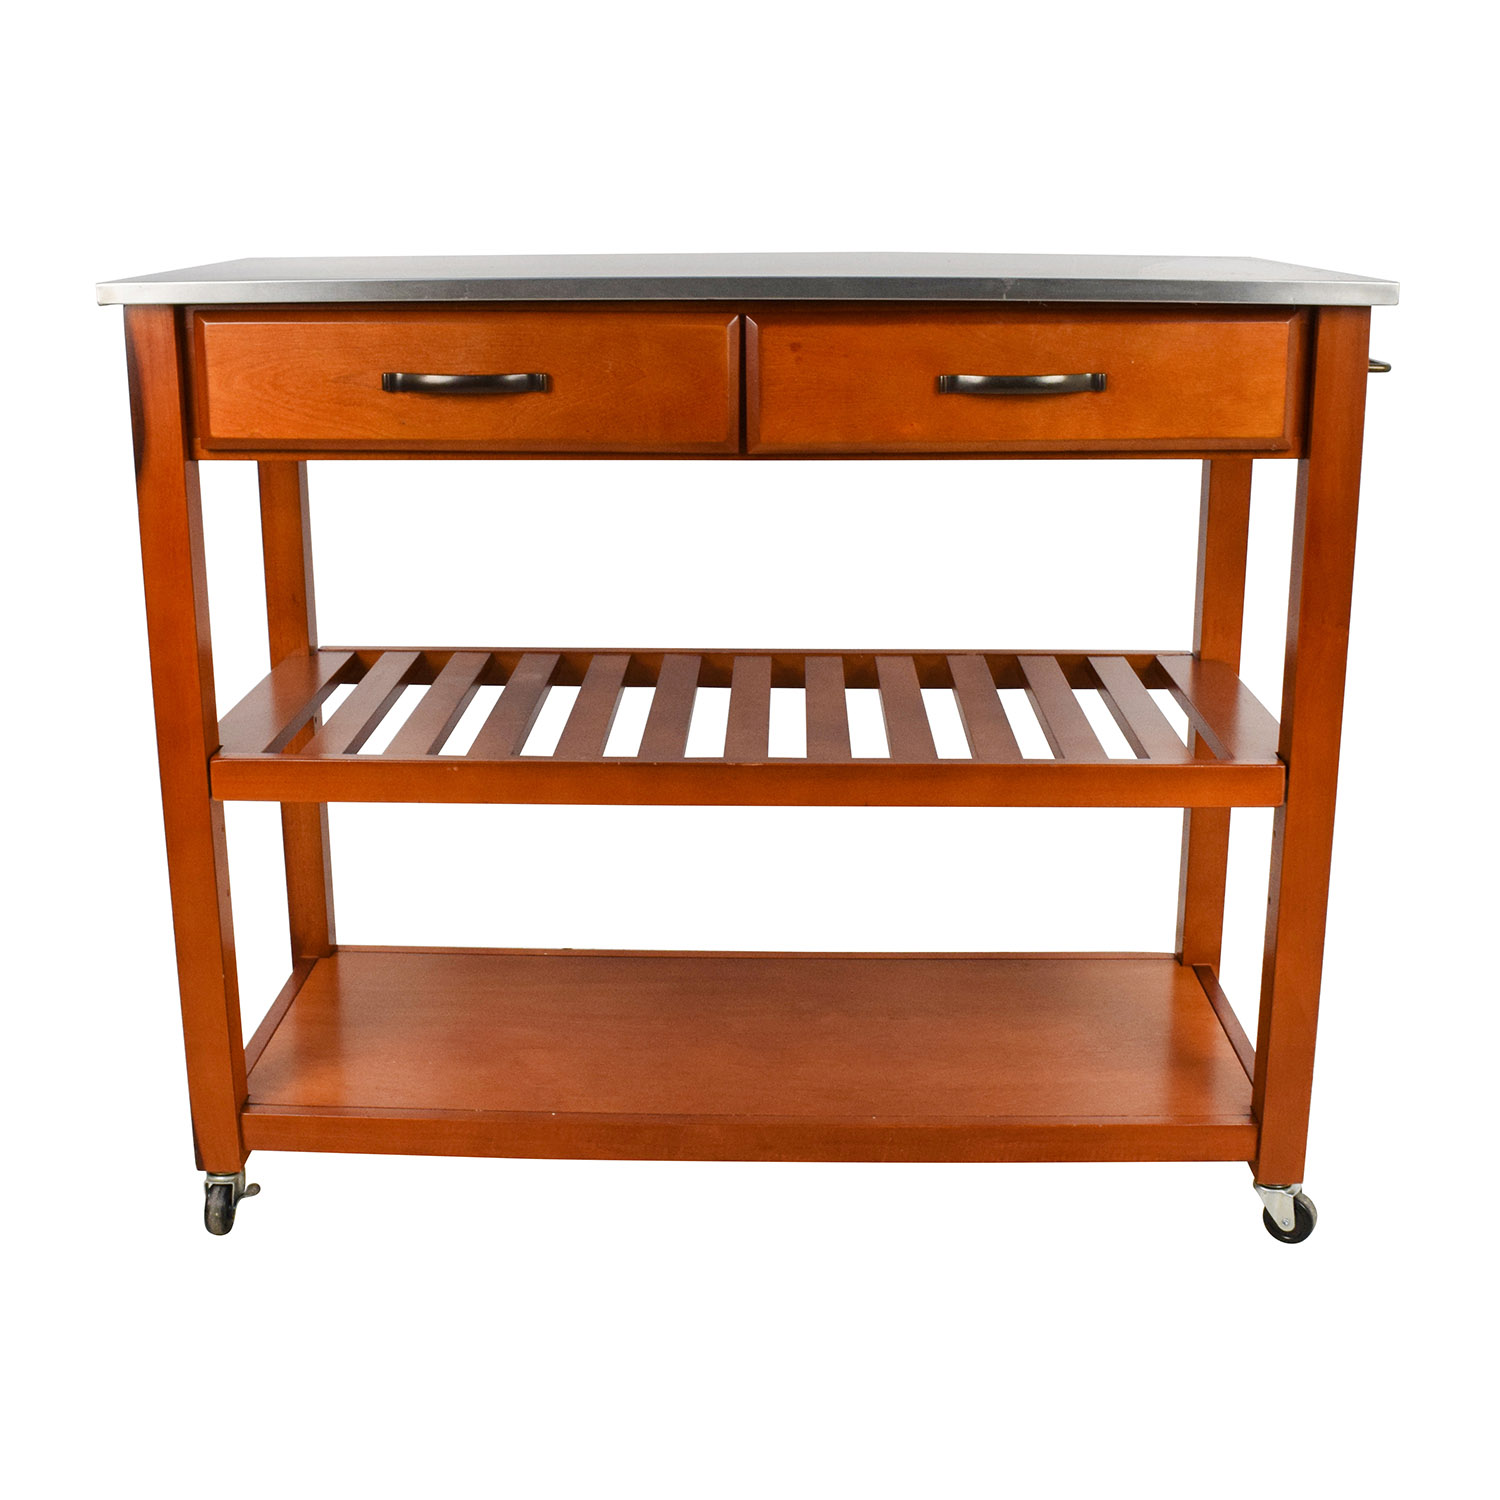 utility tables kitchen utility table Crosley Crosley Natural Wood Top Kitchen Cart and Island nj